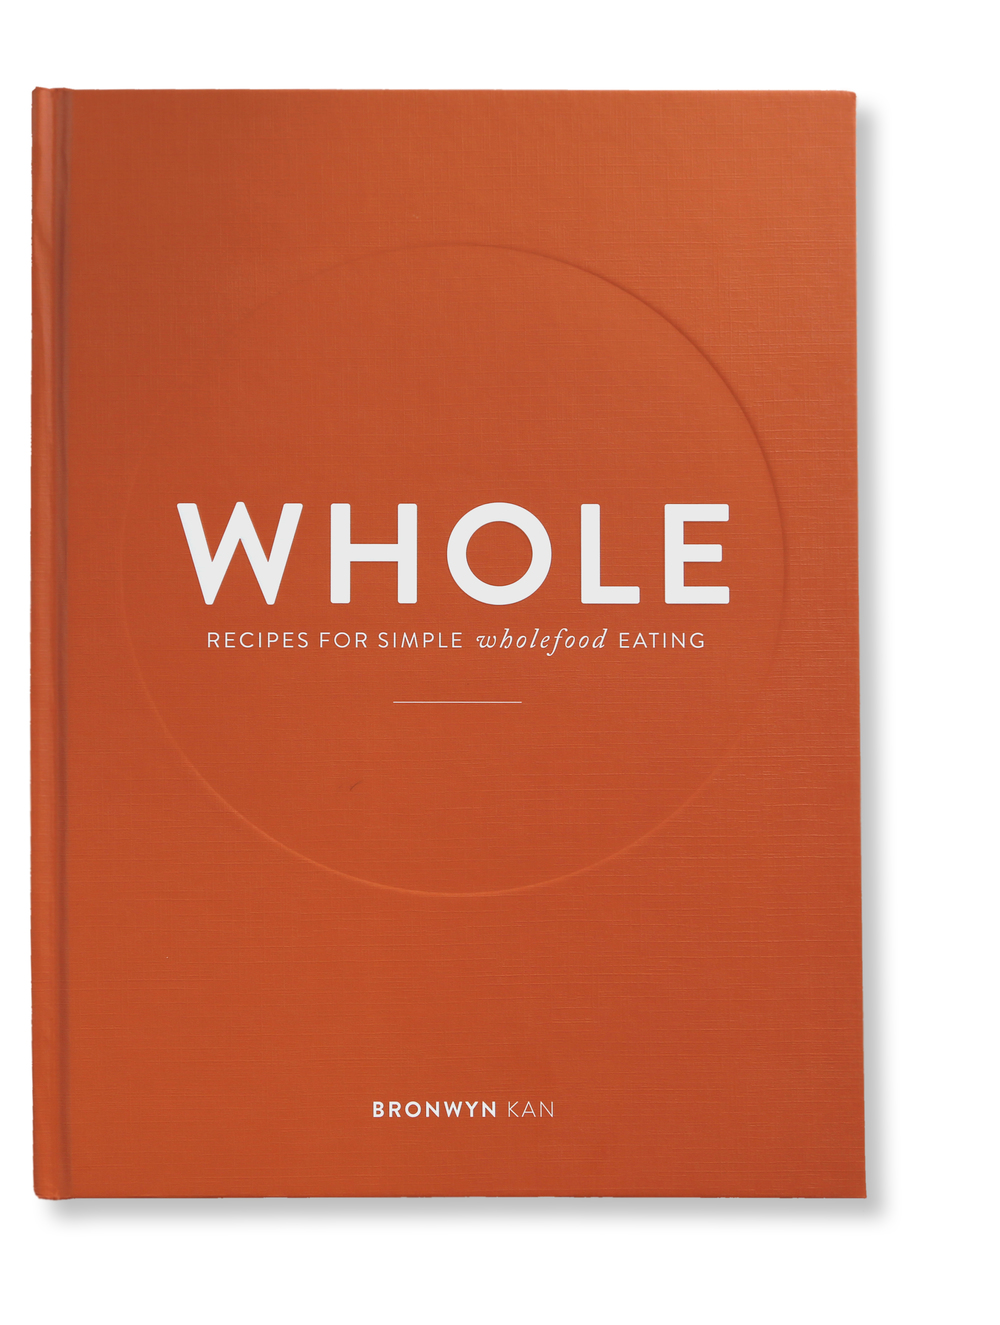 WHOLE: Recipes for Simple wholefood Eating